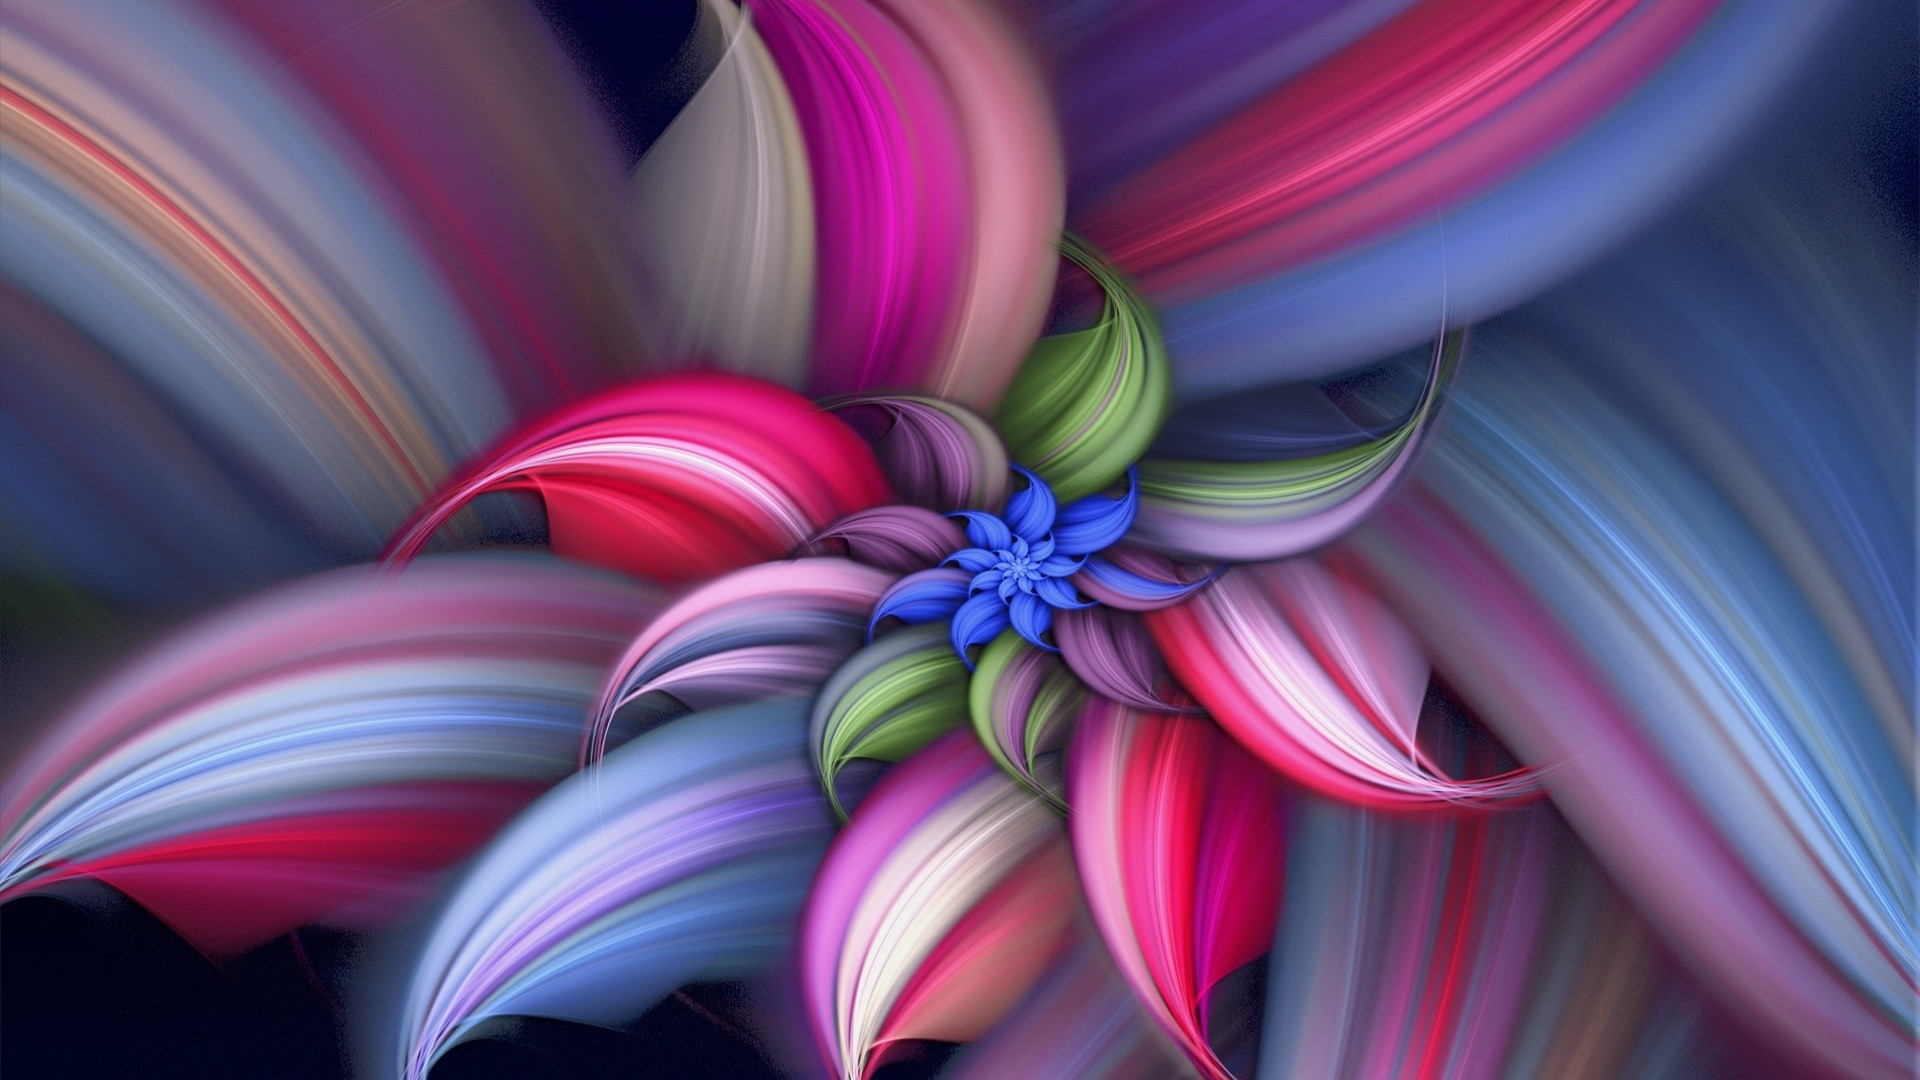 Amazing Abstract Flower Vector Design HD Wallpaper Image